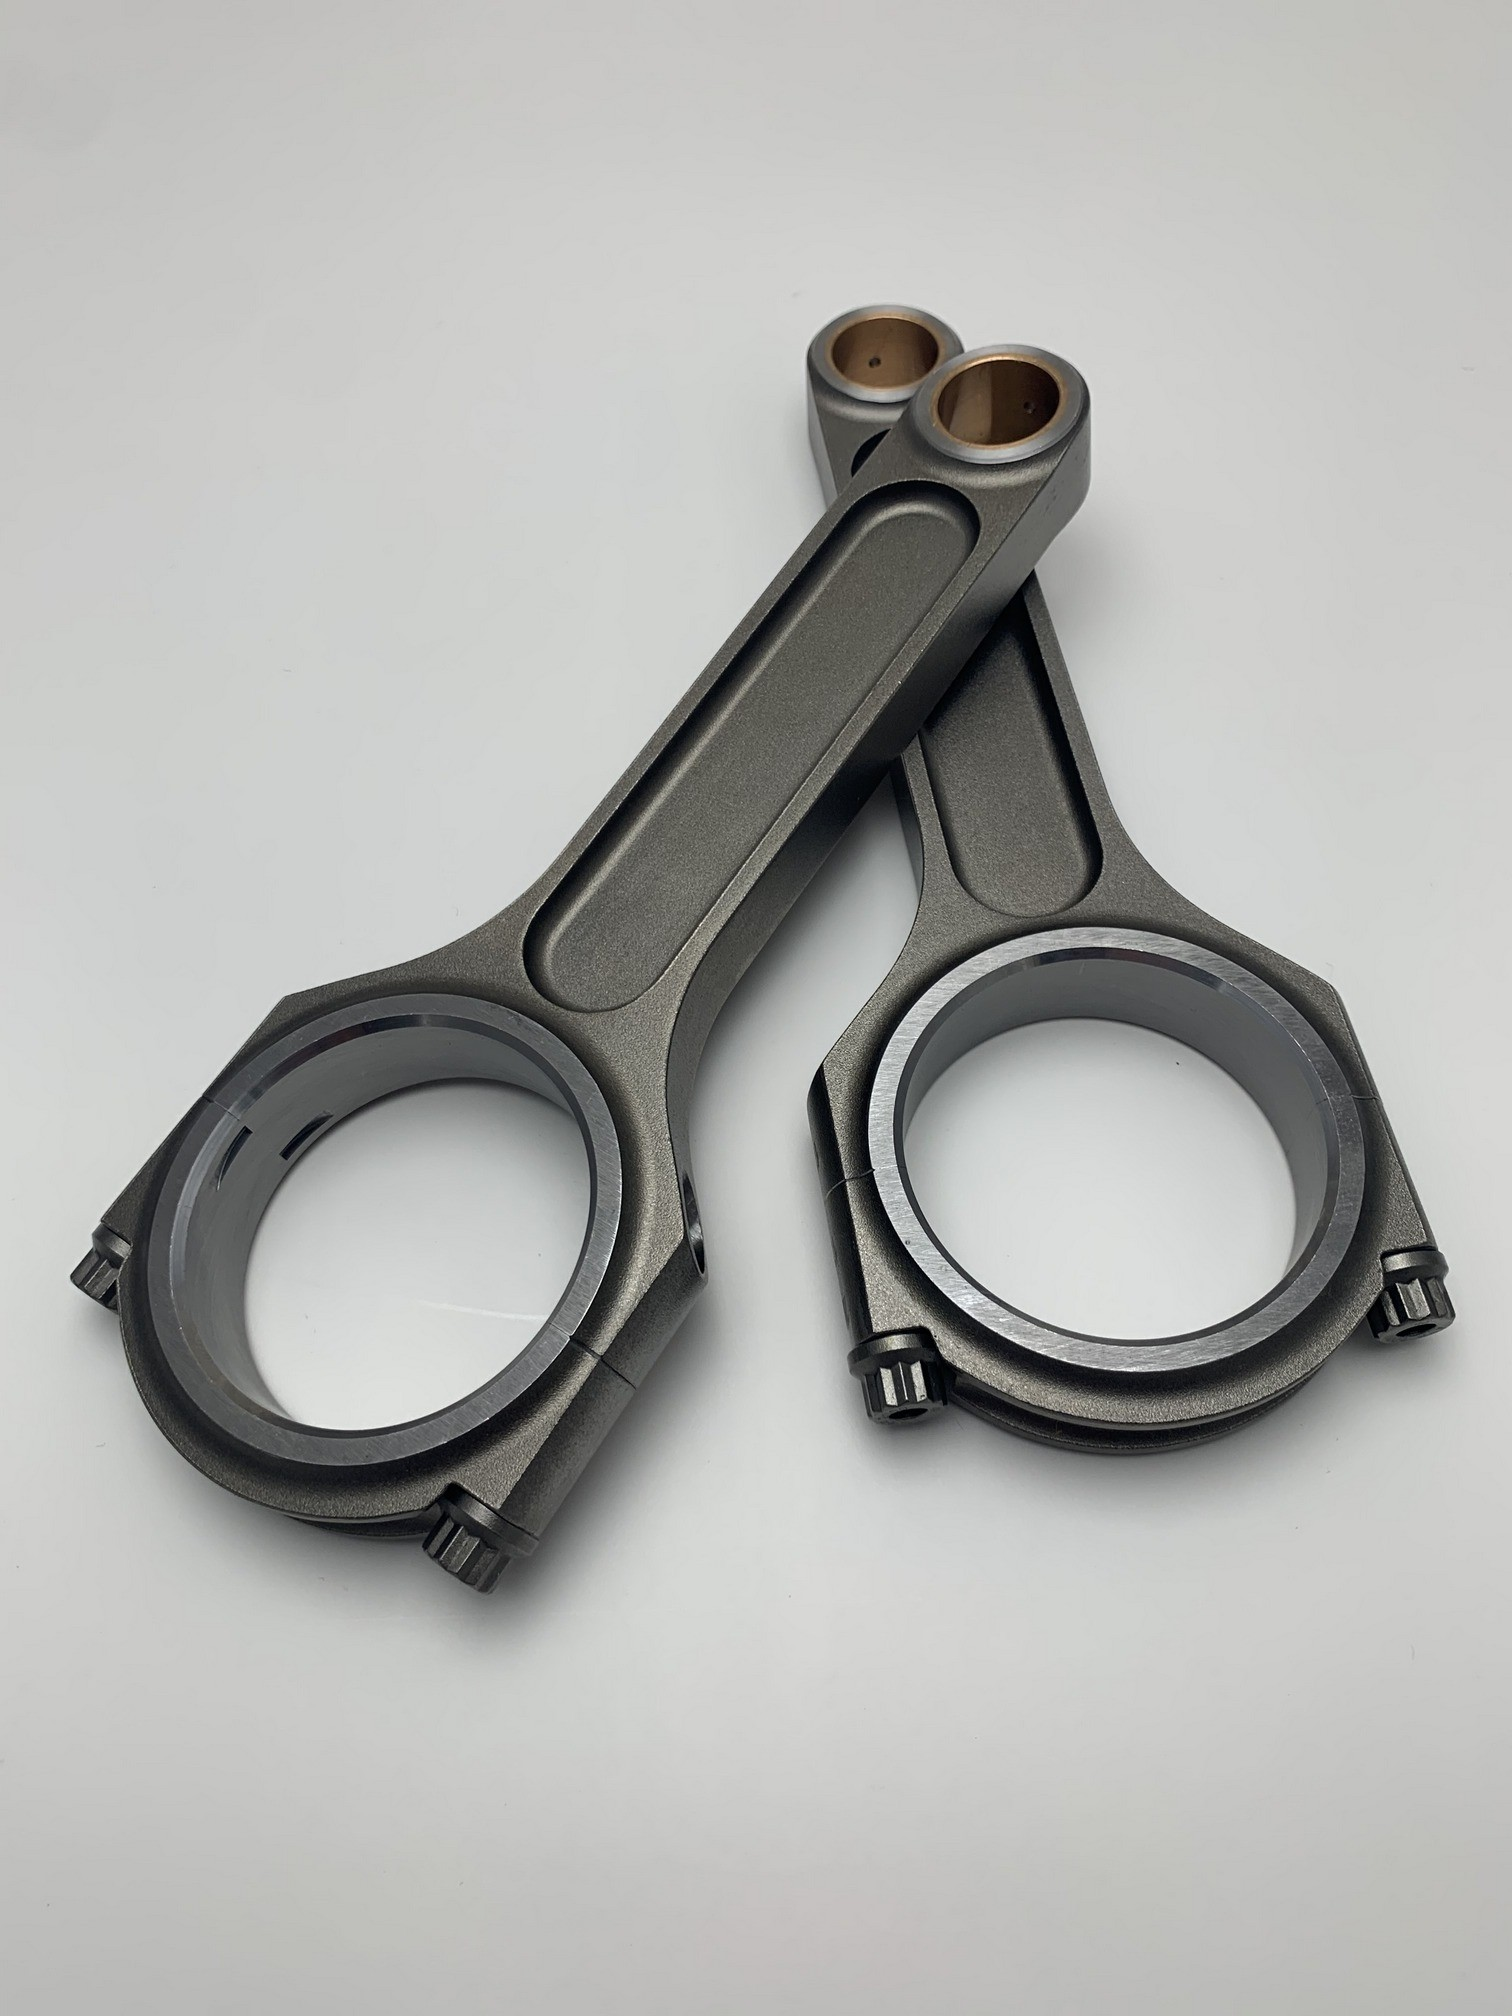 VR6 Connecting Rod Set